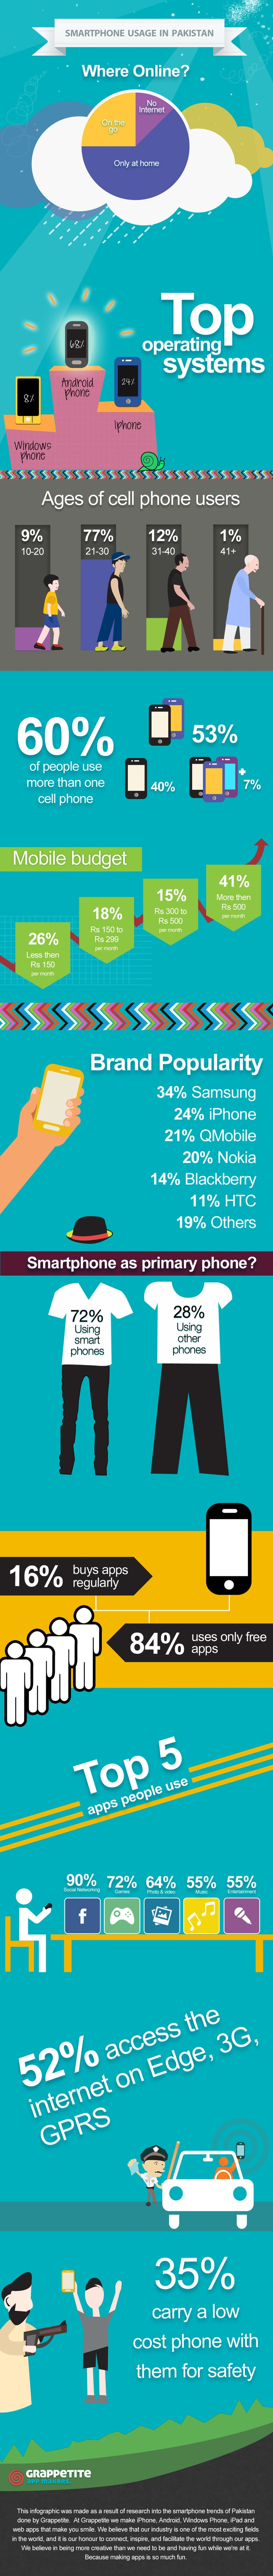 Smartphone usage in Pakistan in 2014 - INFOGRAPHIC